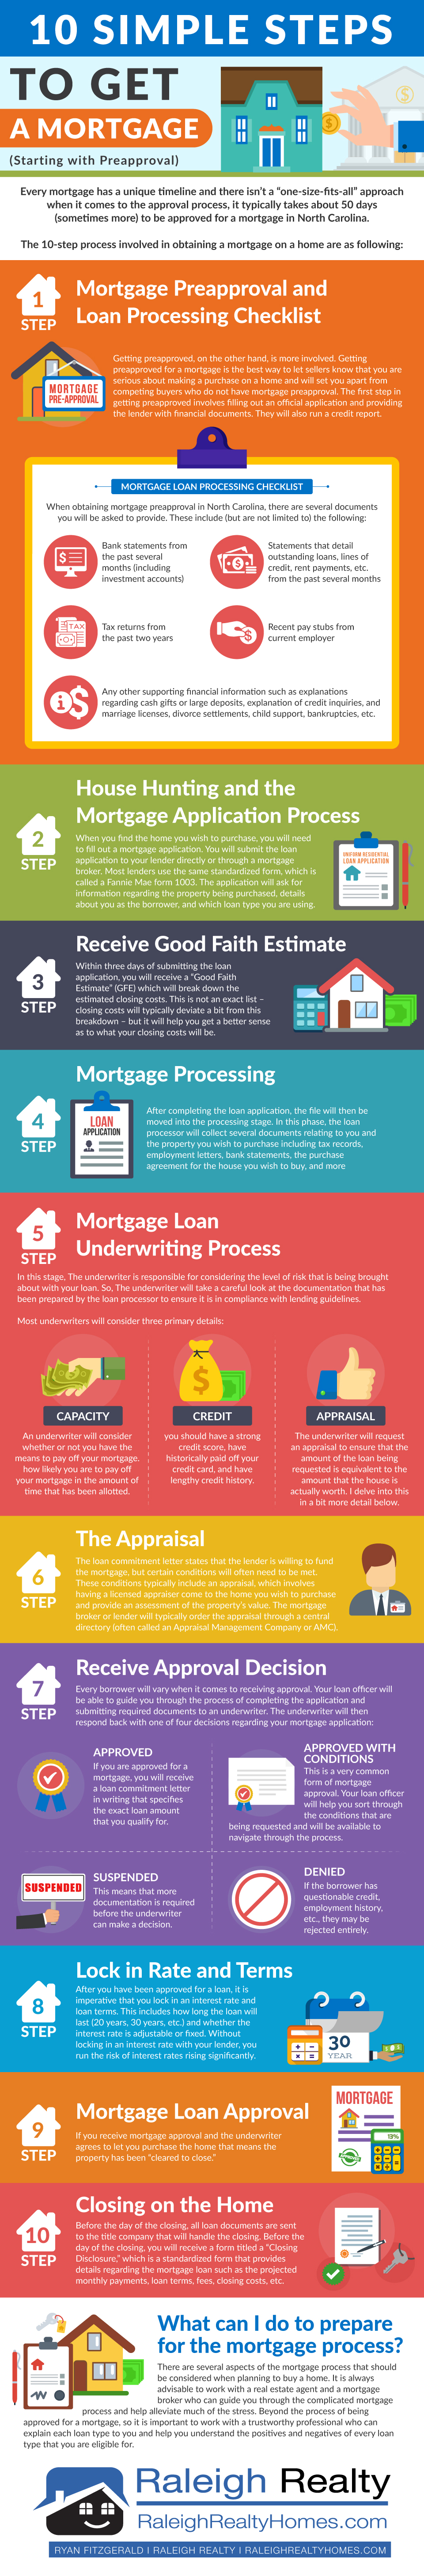 10 Simple Steps To Get A Mortgage With A Preapproval